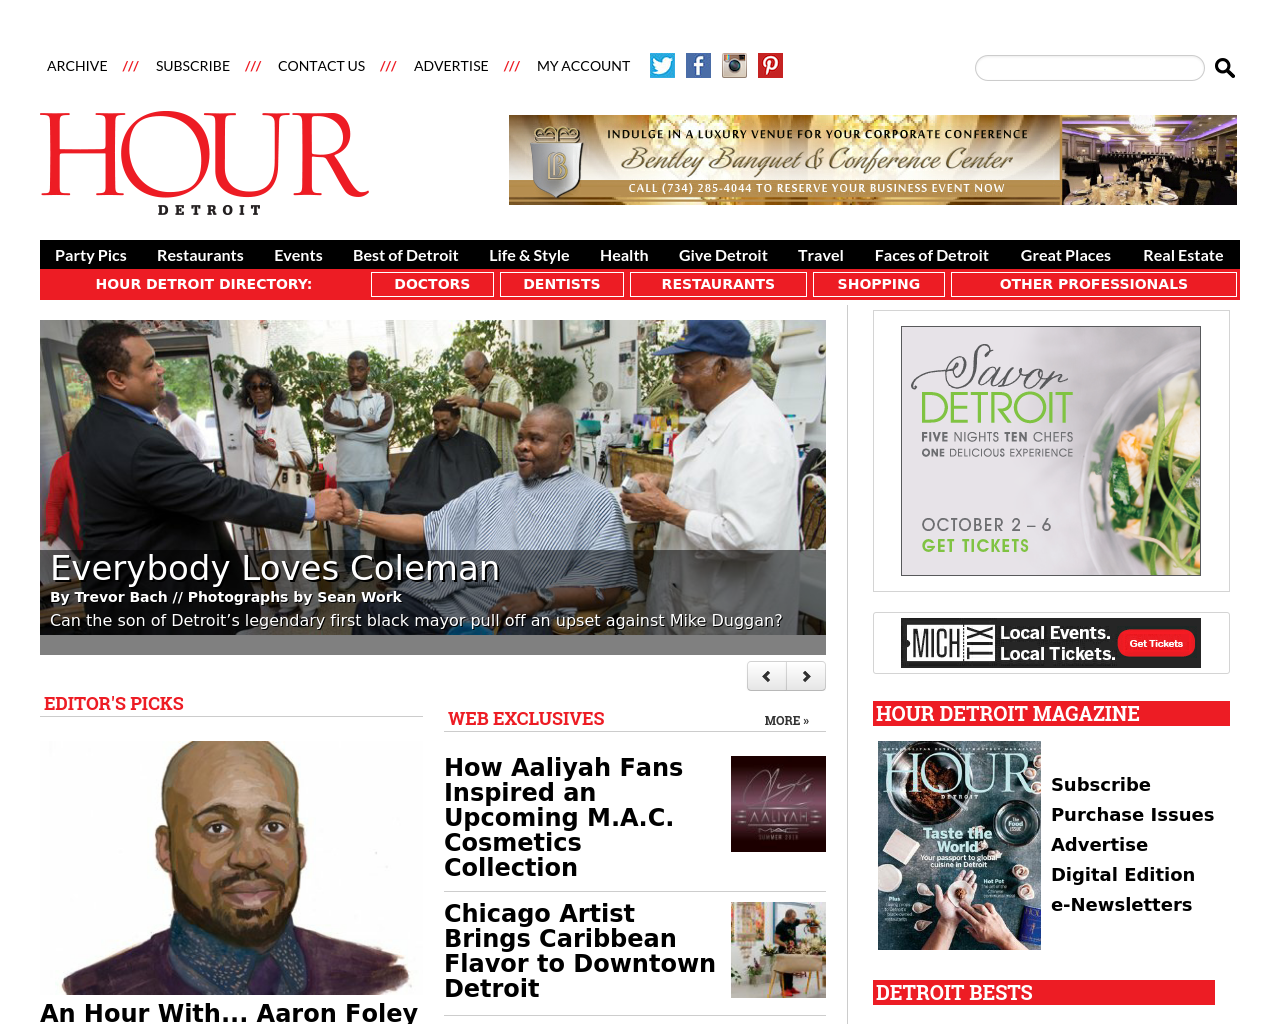 Hour-Detroit-Magazine-Advertising-Reviews-Pricing